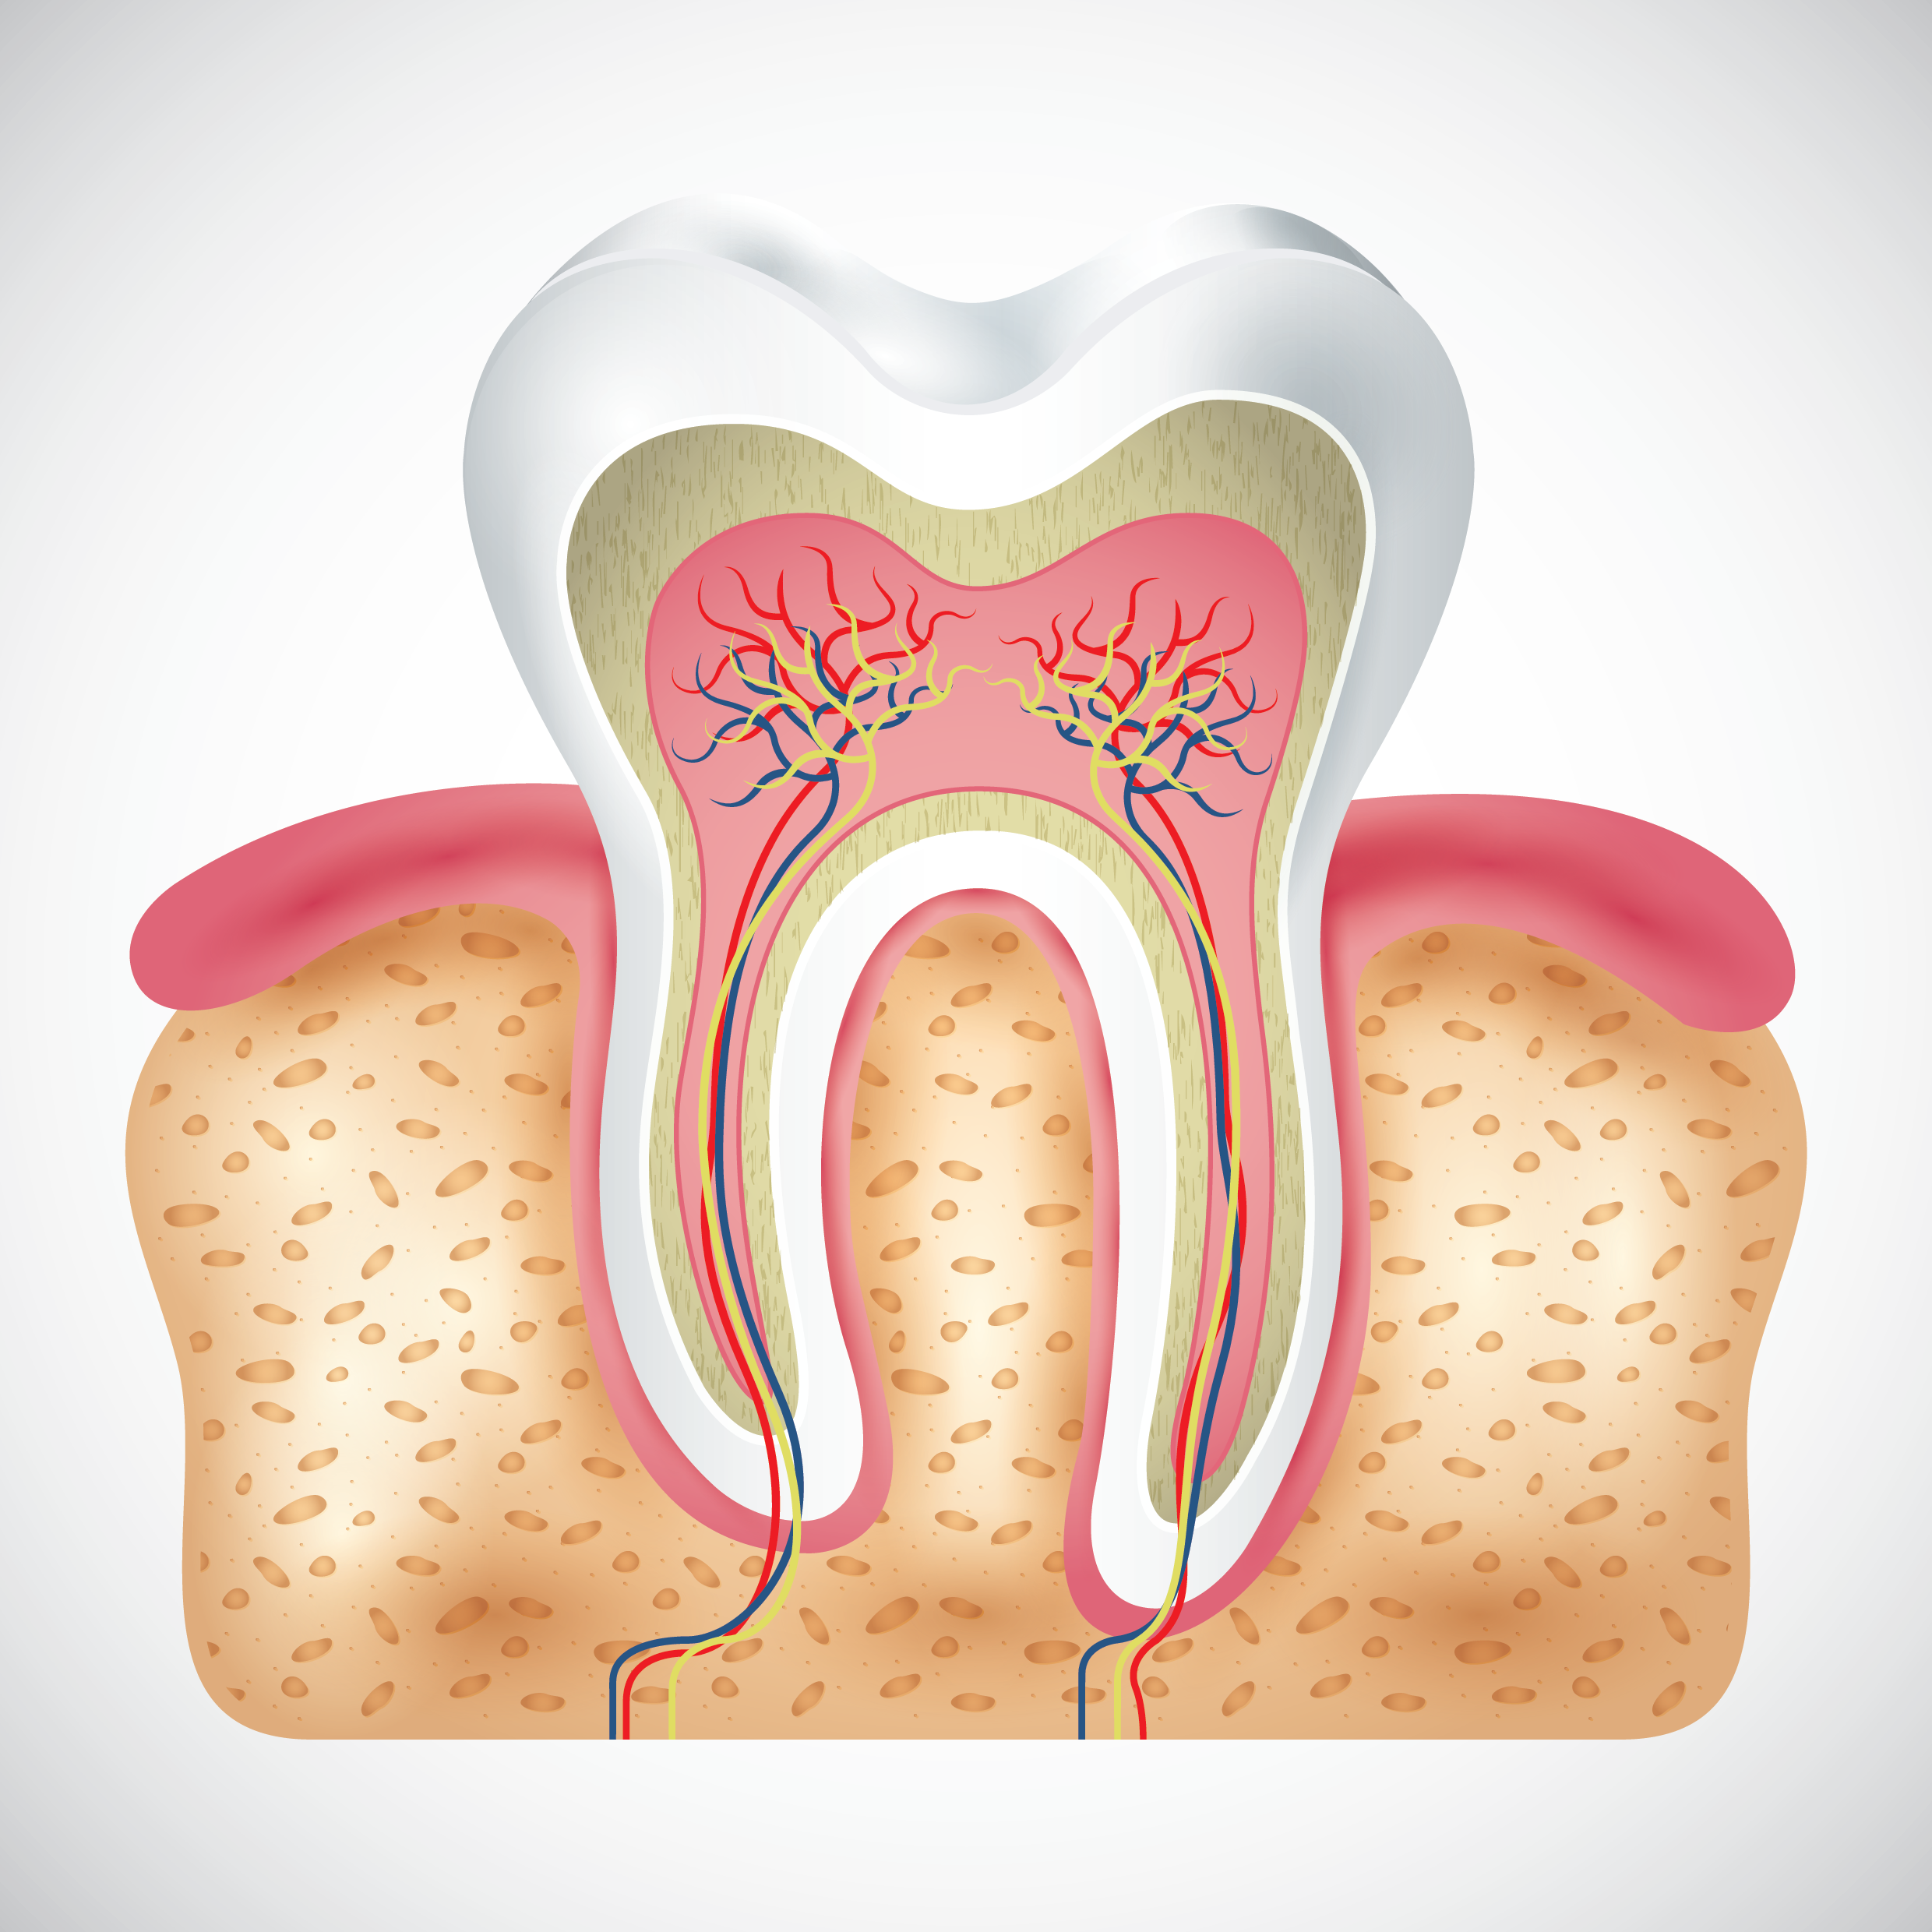 Step By Step Guide To Root Canal Procedure Artistic Dental